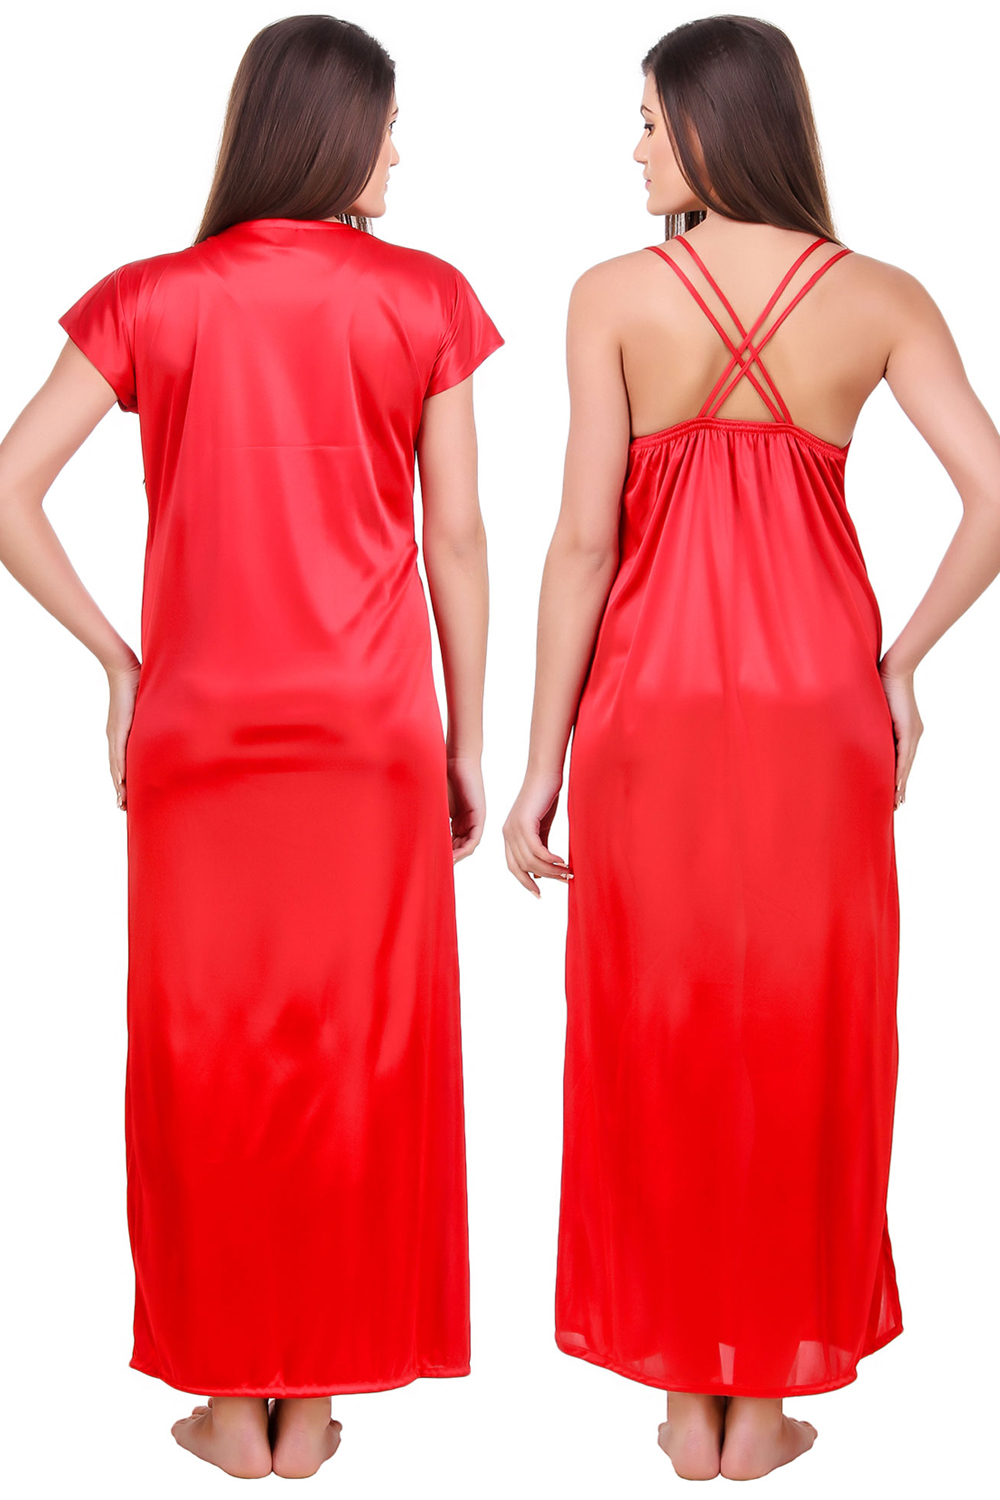 c7bd0133ca Fasense Satin Red Nightwear 2 Pc Set of Nighty and Wrap Gown - Buy Fasense  Satin Red Nightwear 2 Pc Set of Nighty and Wrap Gown Online   Best Price in  India ...